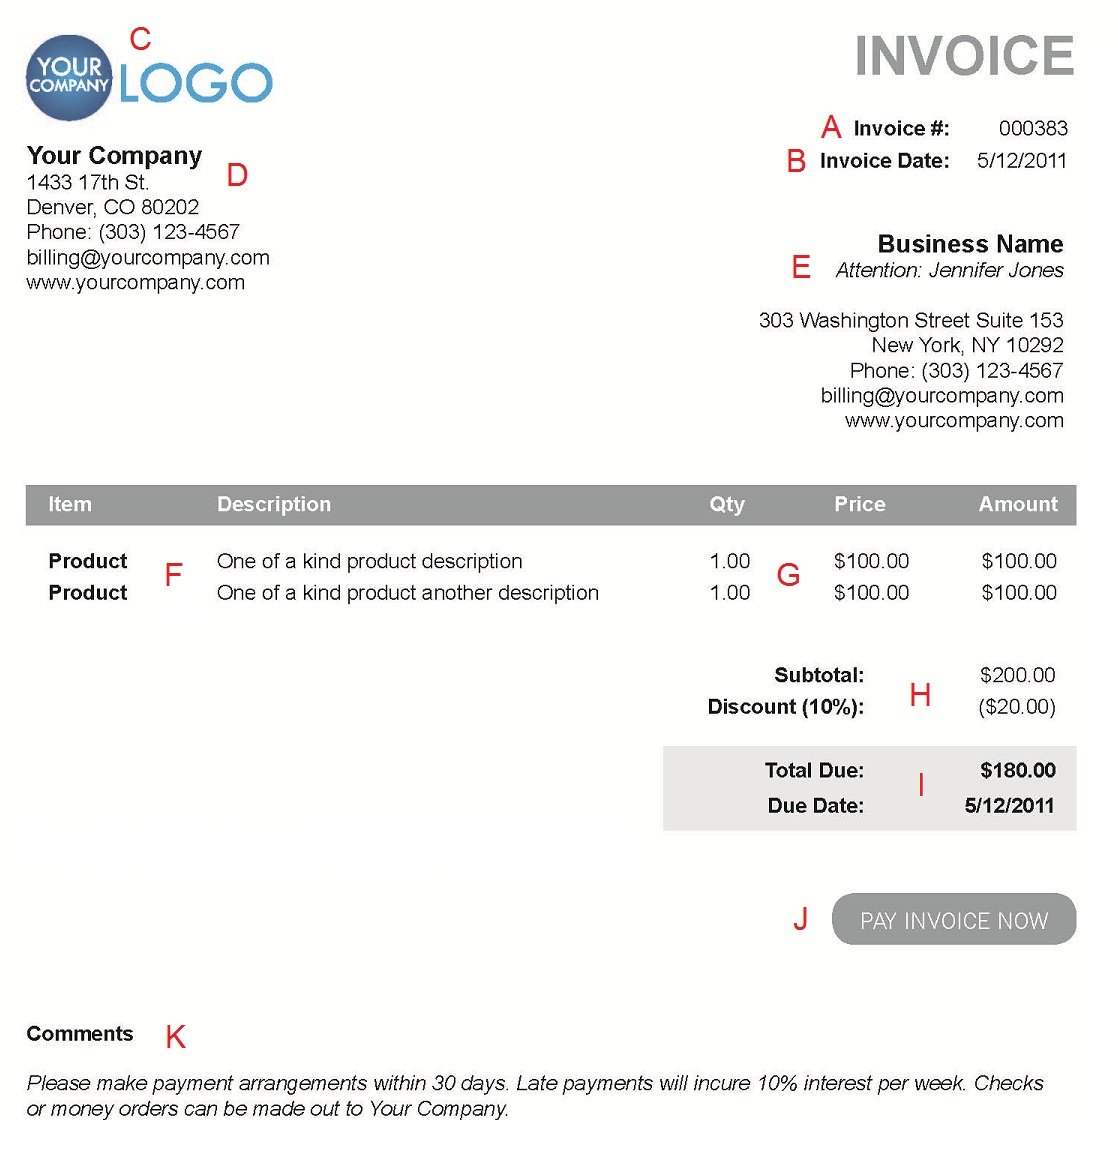 Poorboyzjeepclubus  Splendid The  Different Sections Of An Electronic Payment Invoice With Engaging A  With Beautiful Invoice No Also Sales Invoice Template Excel In Addition Open Invoice Method And What Is The Best Invoice Software As Well As Jeep Grand Cherokee Invoice Price Additionally What Is The Invoice Price On A Car From Paysimplecom With Poorboyzjeepclubus  Engaging The  Different Sections Of An Electronic Payment Invoice With Beautiful A  And Splendid Invoice No Also Sales Invoice Template Excel In Addition Open Invoice Method From Paysimplecom